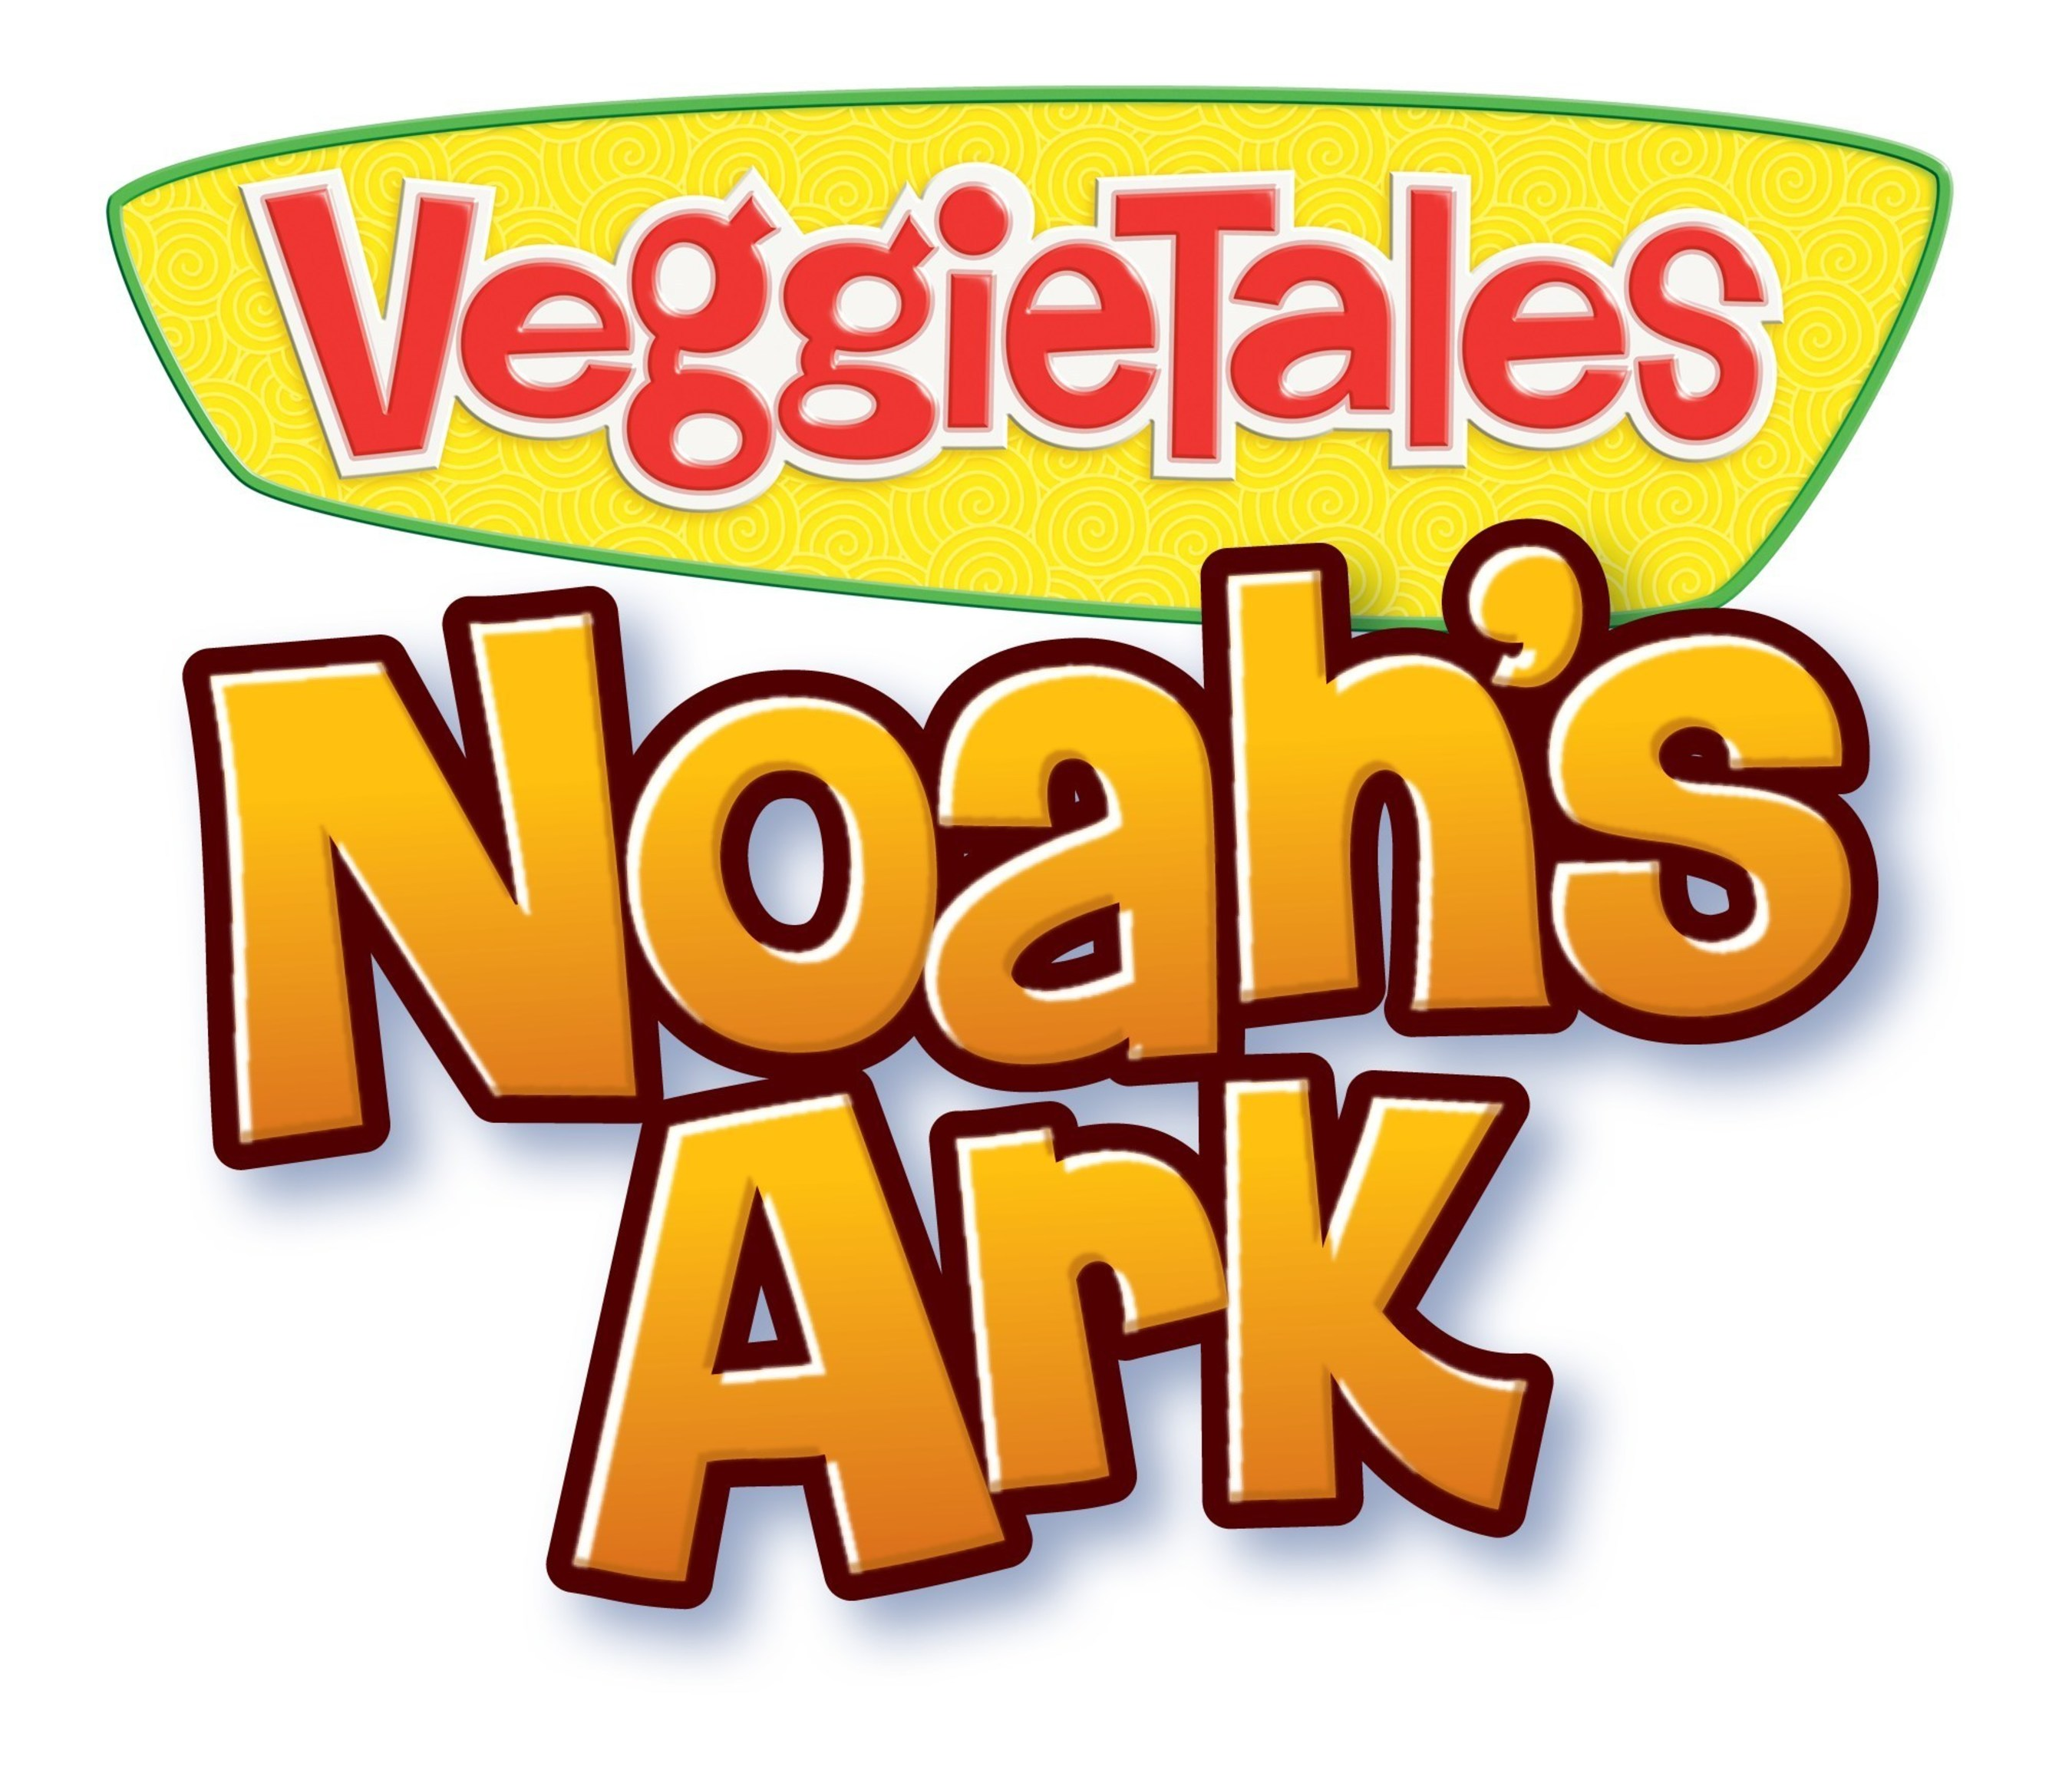 """VeggieTales: Noah's Ark,"" starring the voices of Wayne Brady and Jaci Velasquez, premieres March 3, 2015, on DVD and digital download. (c) 2015 Big Idea Entertainment. All Rights Reserved."